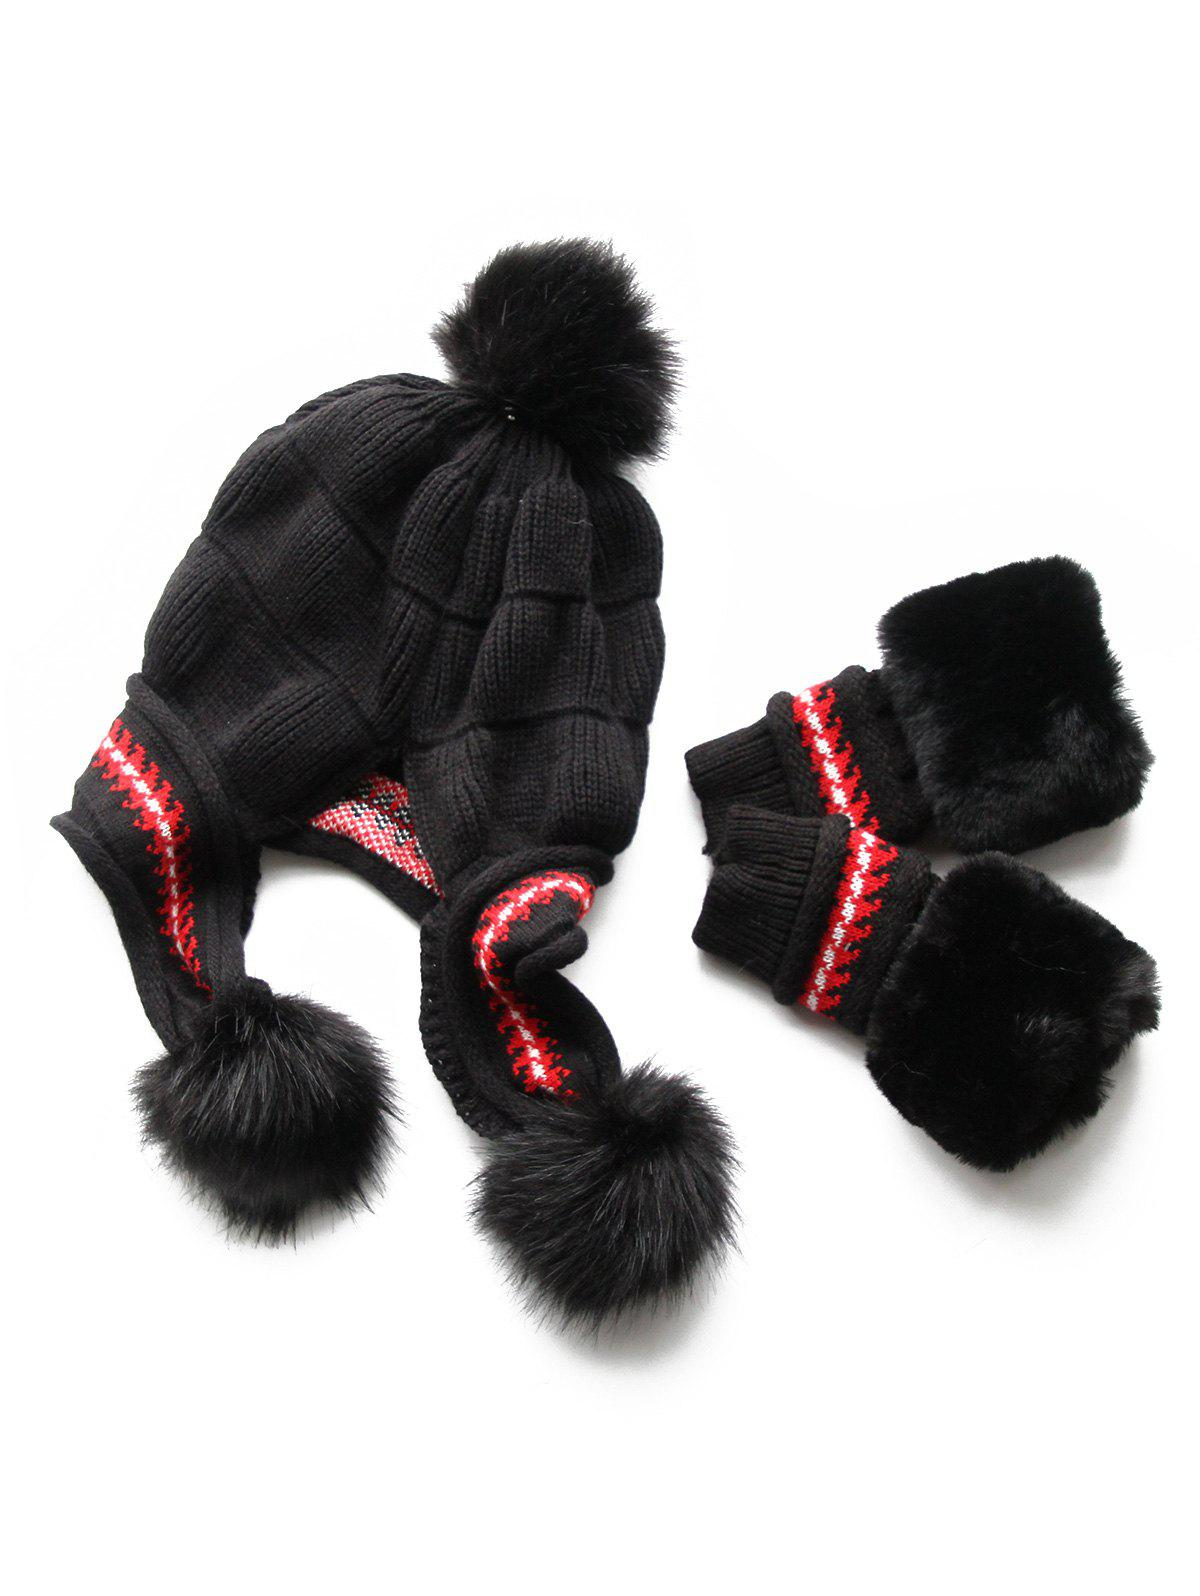 Buy Stylish Winter Knitted Hat Gloves Set